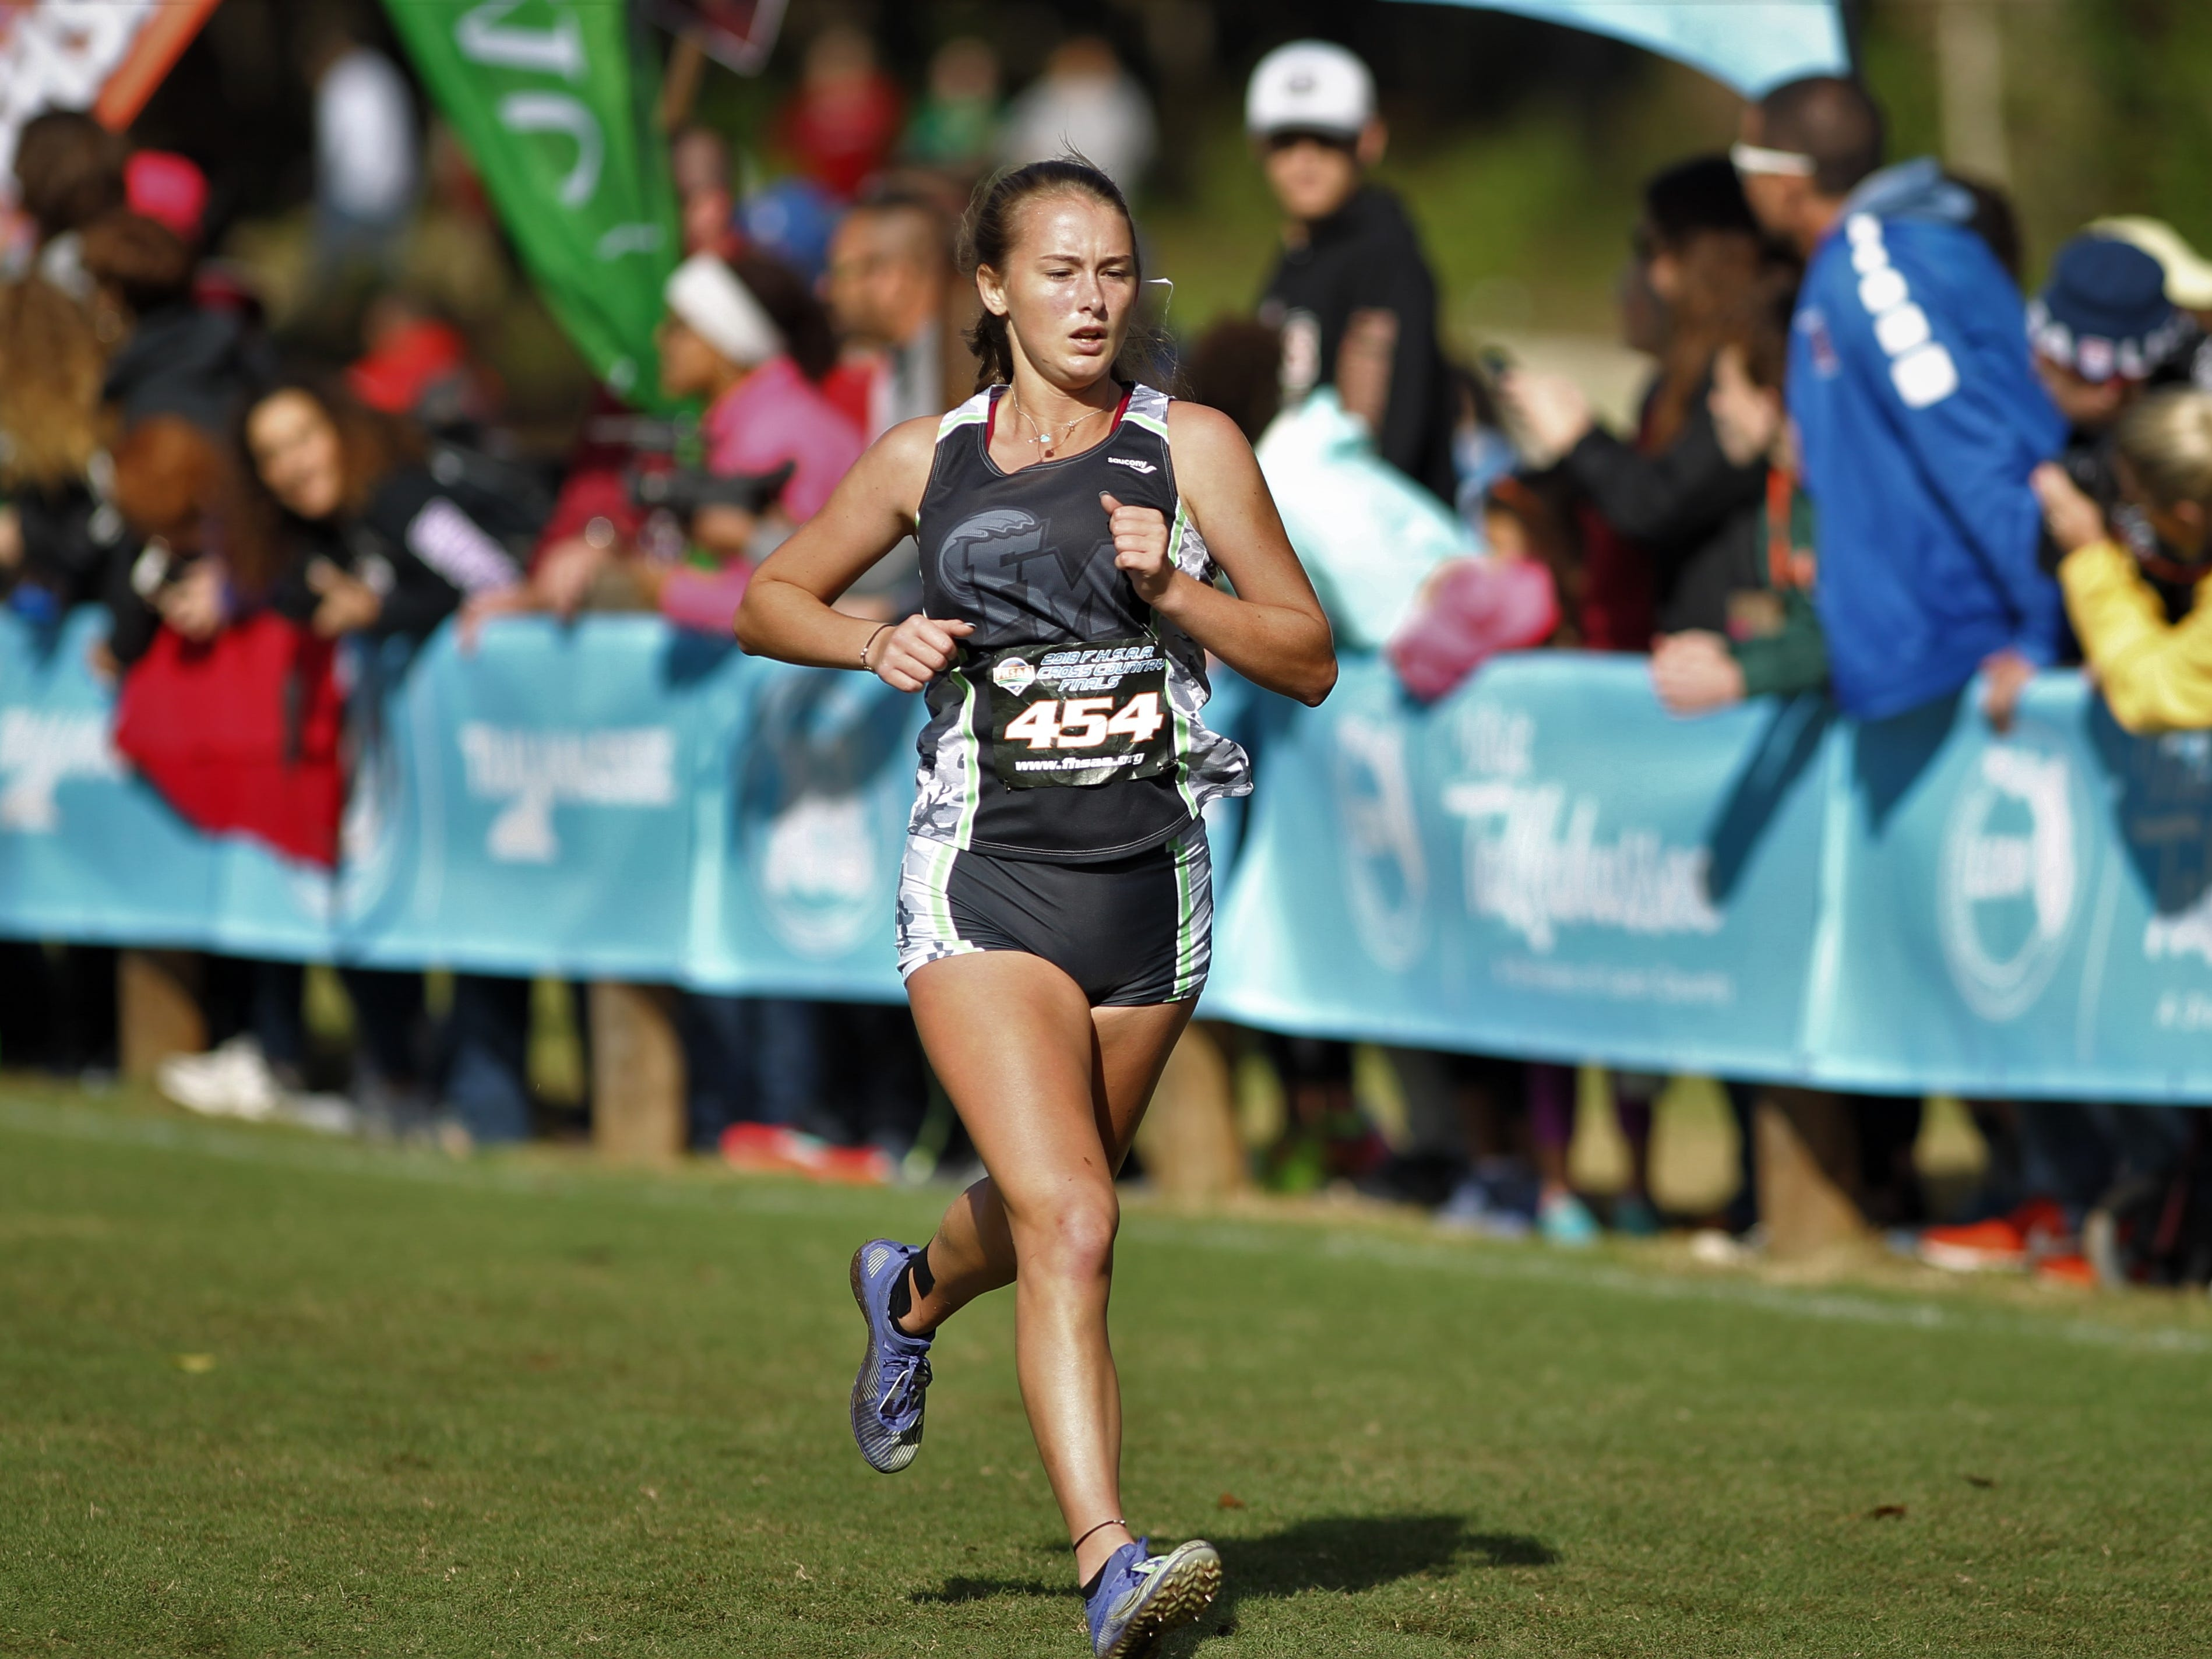 Fort Myers' Mallory Marker races at the FHSAA Cross Country State Championships at Apalachee Regional Park in Tallahassee, Saturday, Nov. 11, 2018.